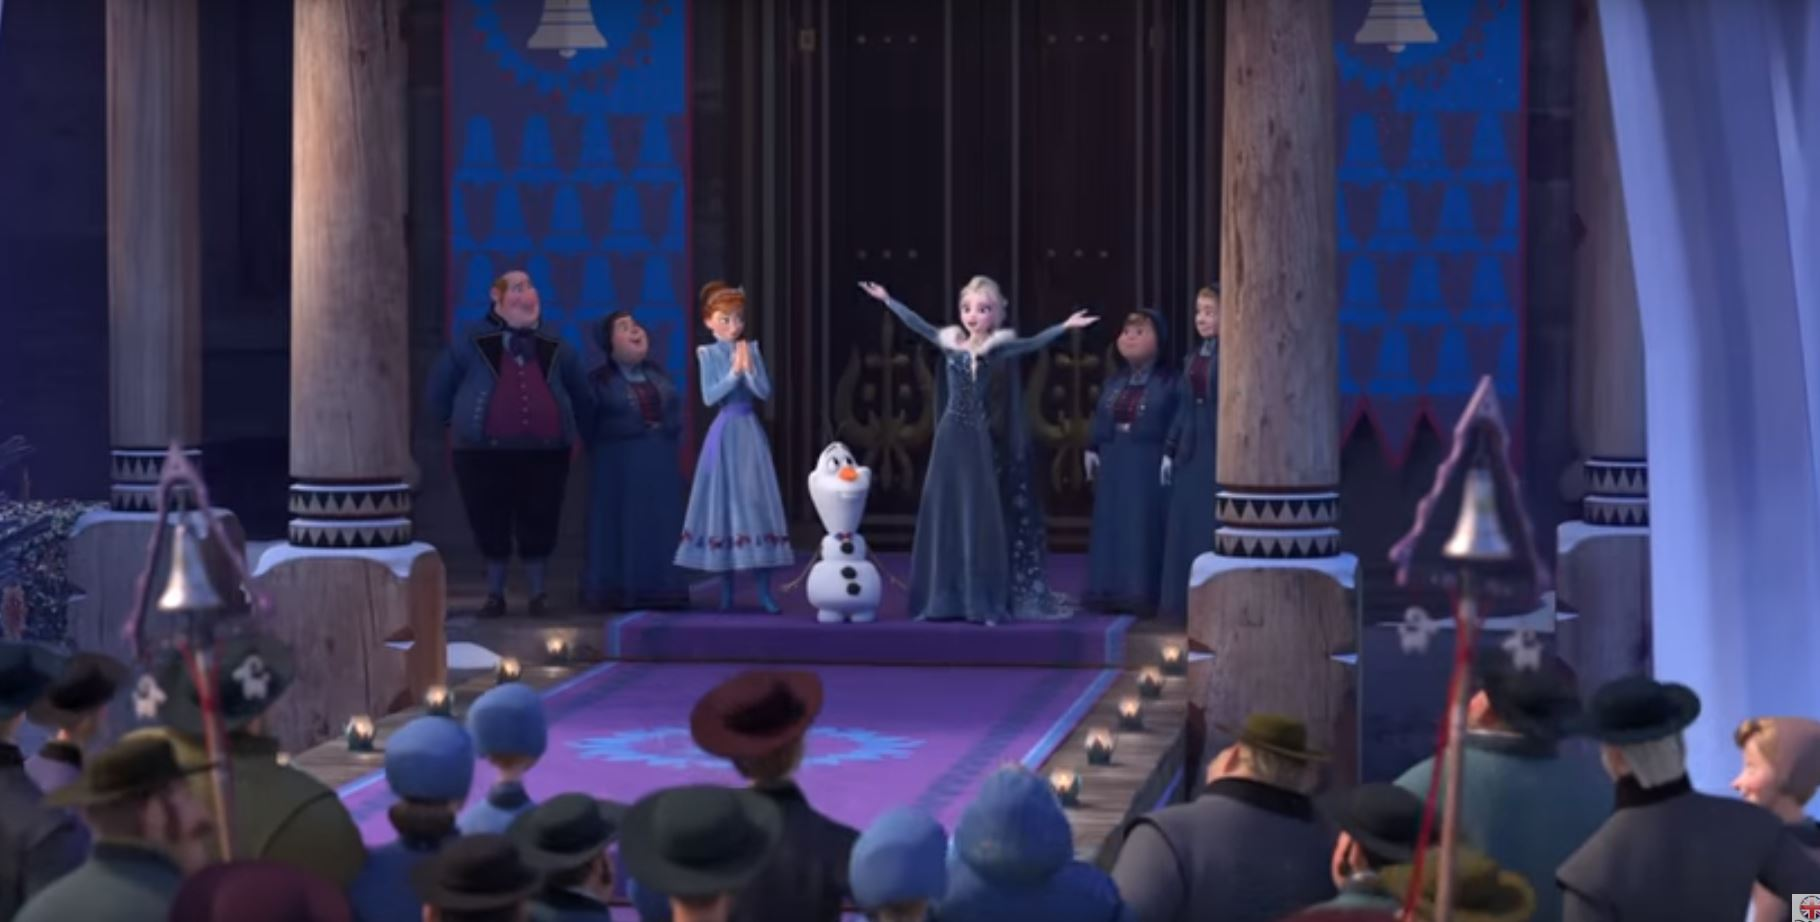 Olaf's Frozen Adventure gets a new trailer as Disney unveils special plans for its November launch